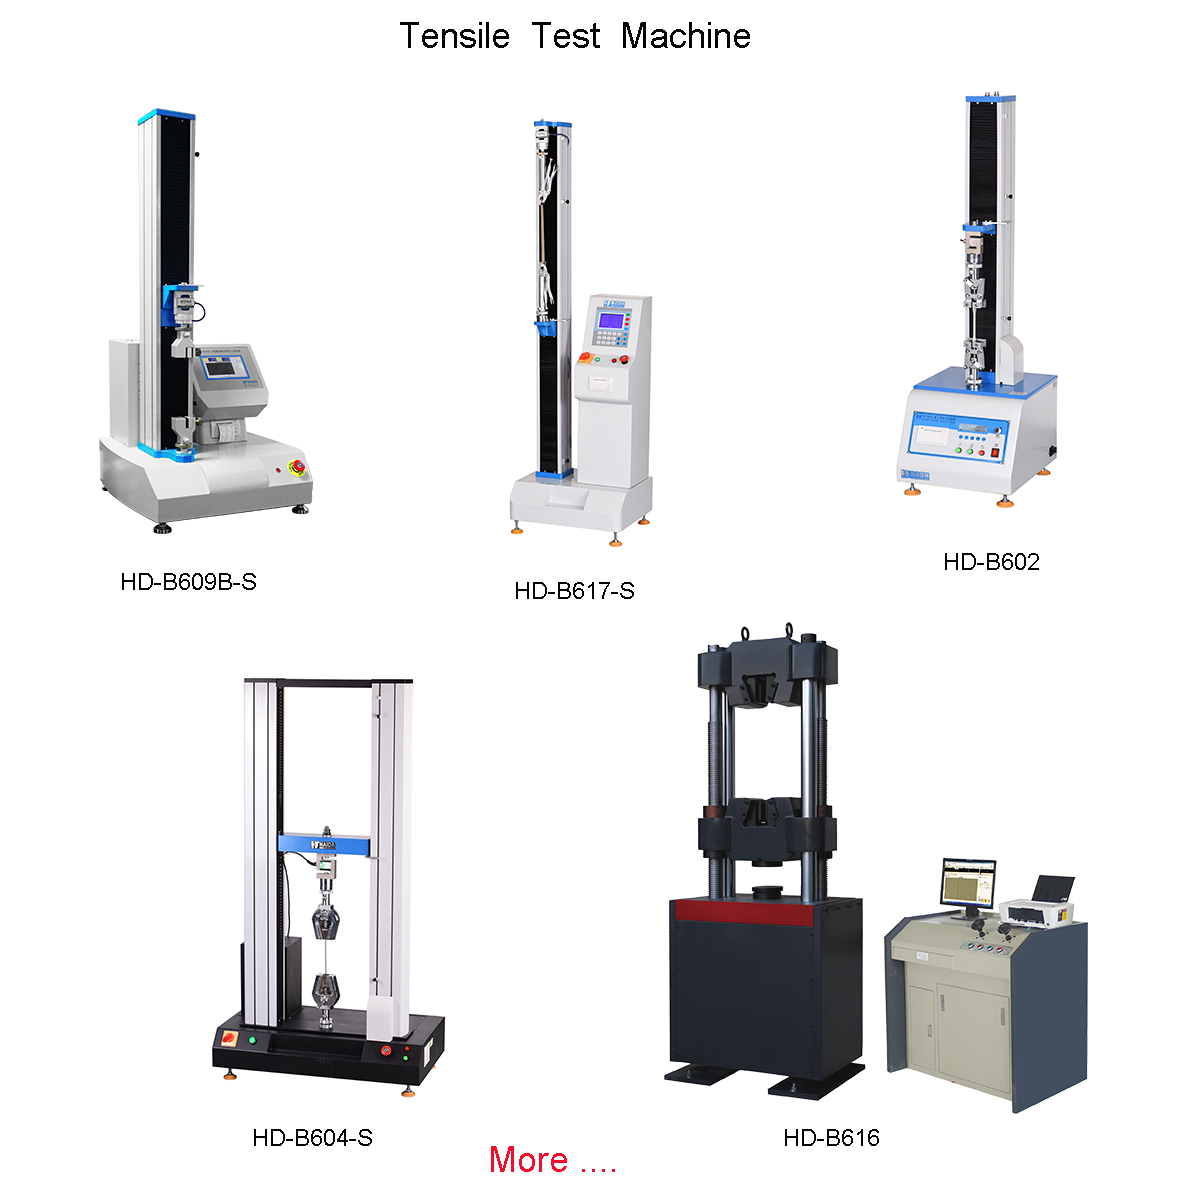 The extensiveness of the tensile testing machine for metallic or nonmetallic testing